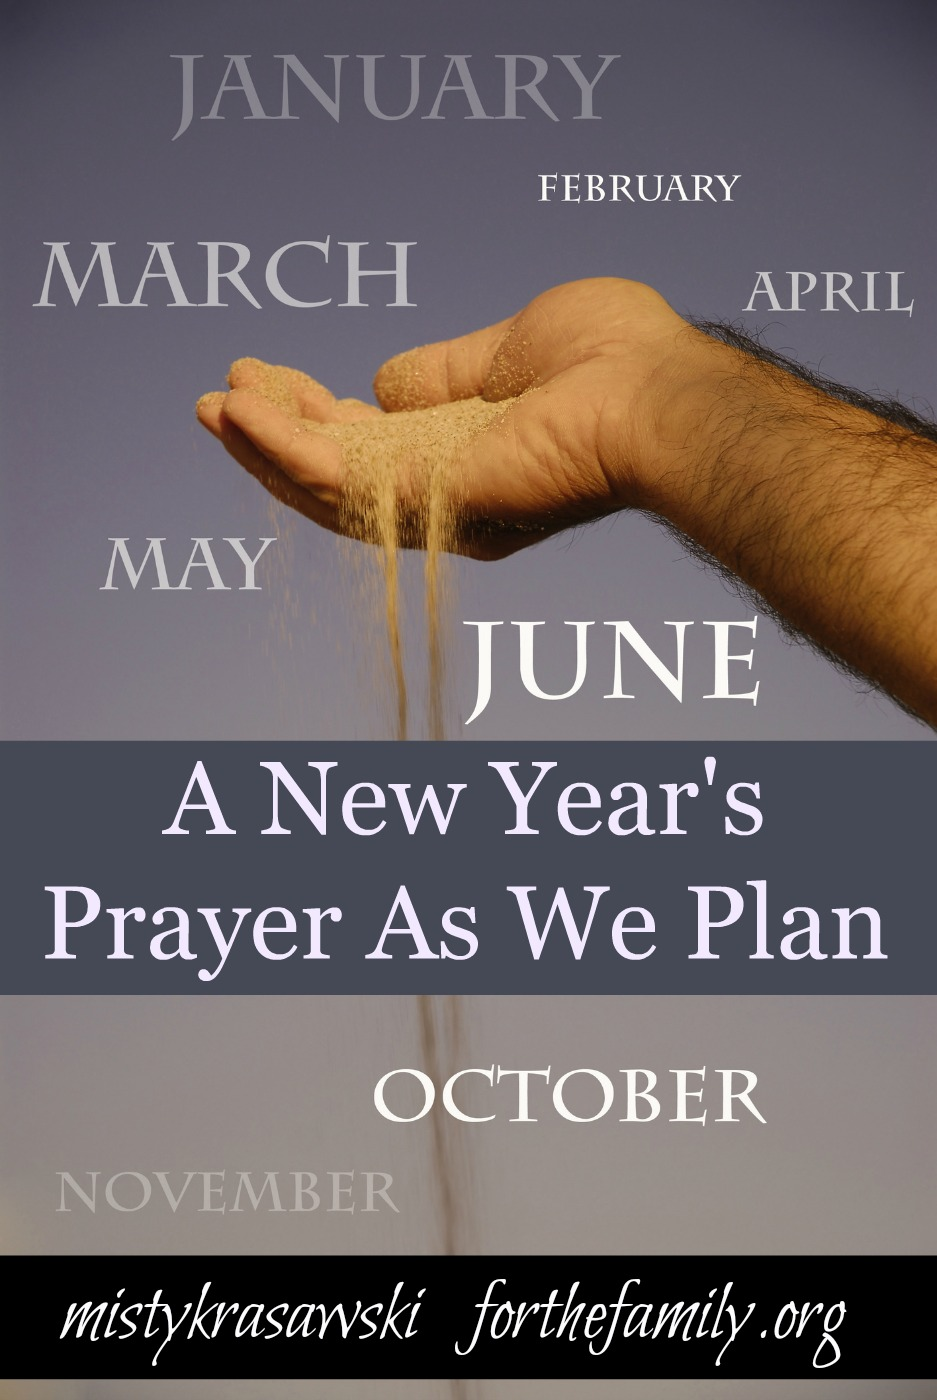 A New Year's Prayer As We Plan - for the family